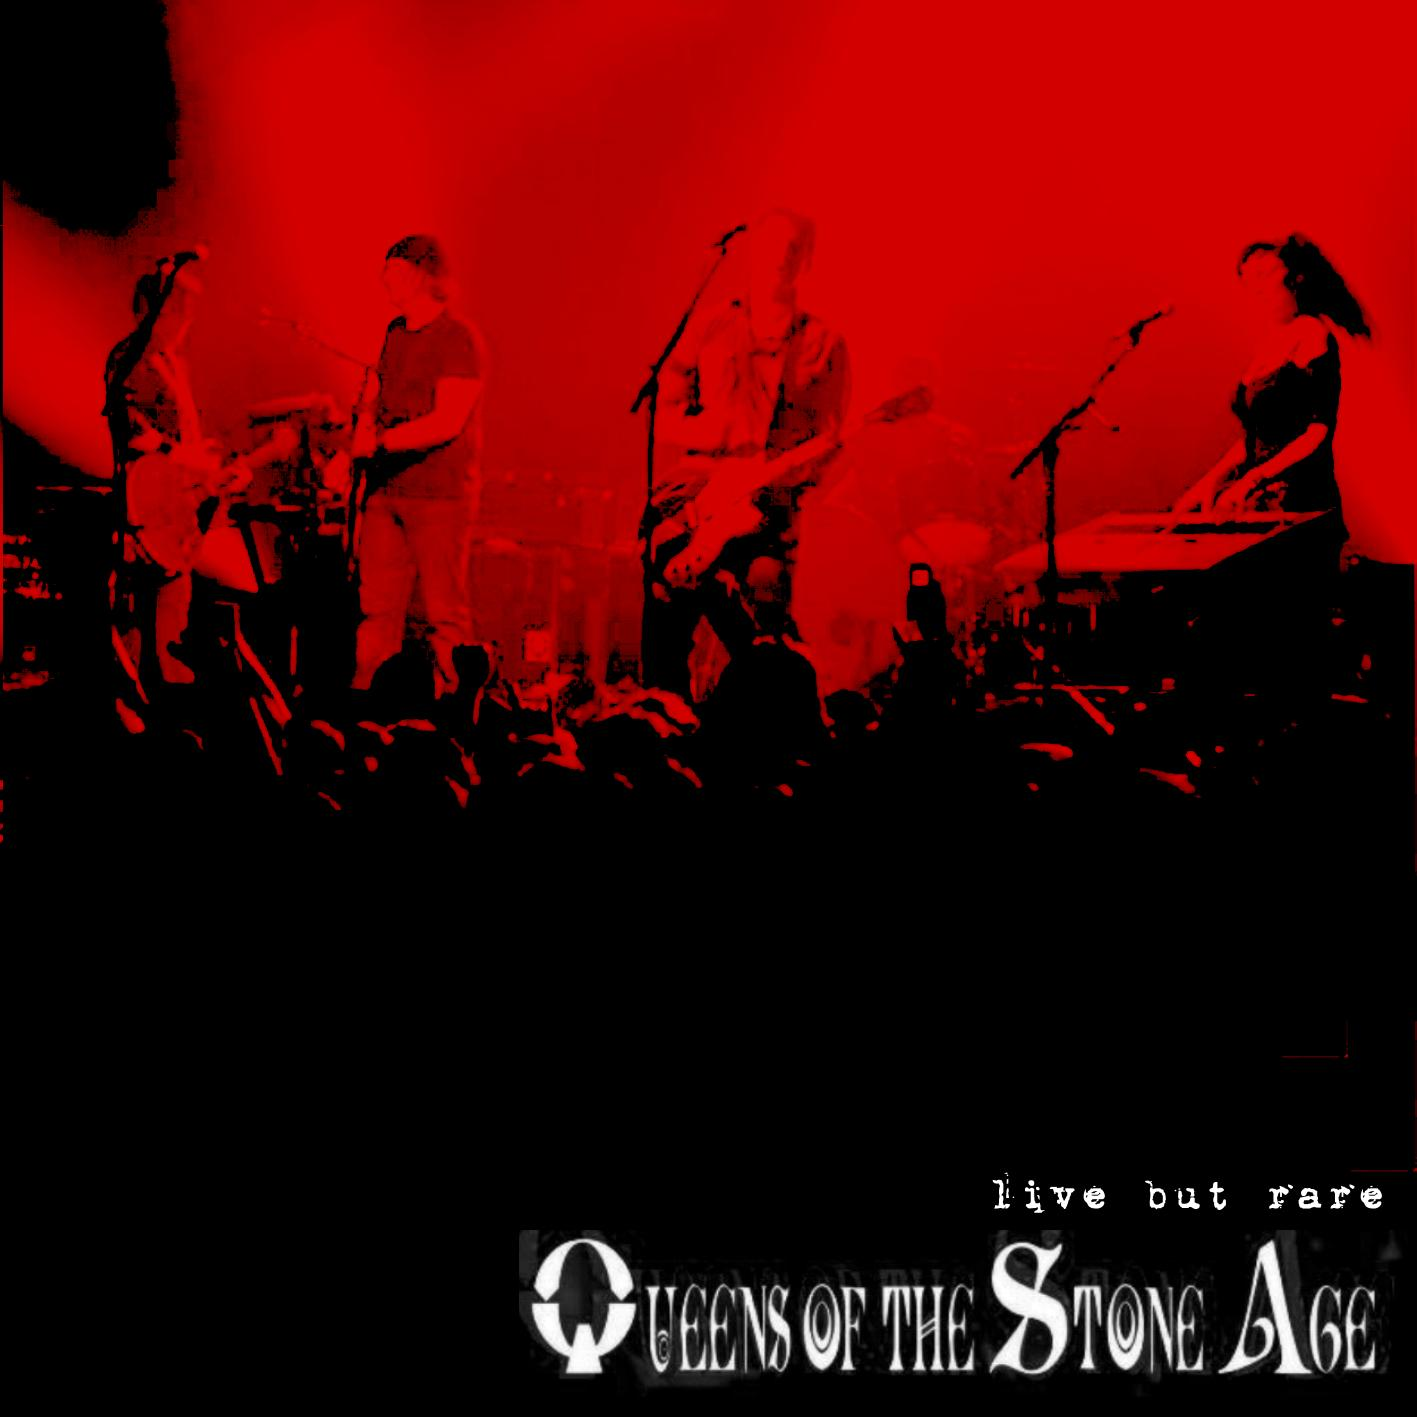 MUSIC ART VCL: Queens of the Stone Age - Live But Rare 2006